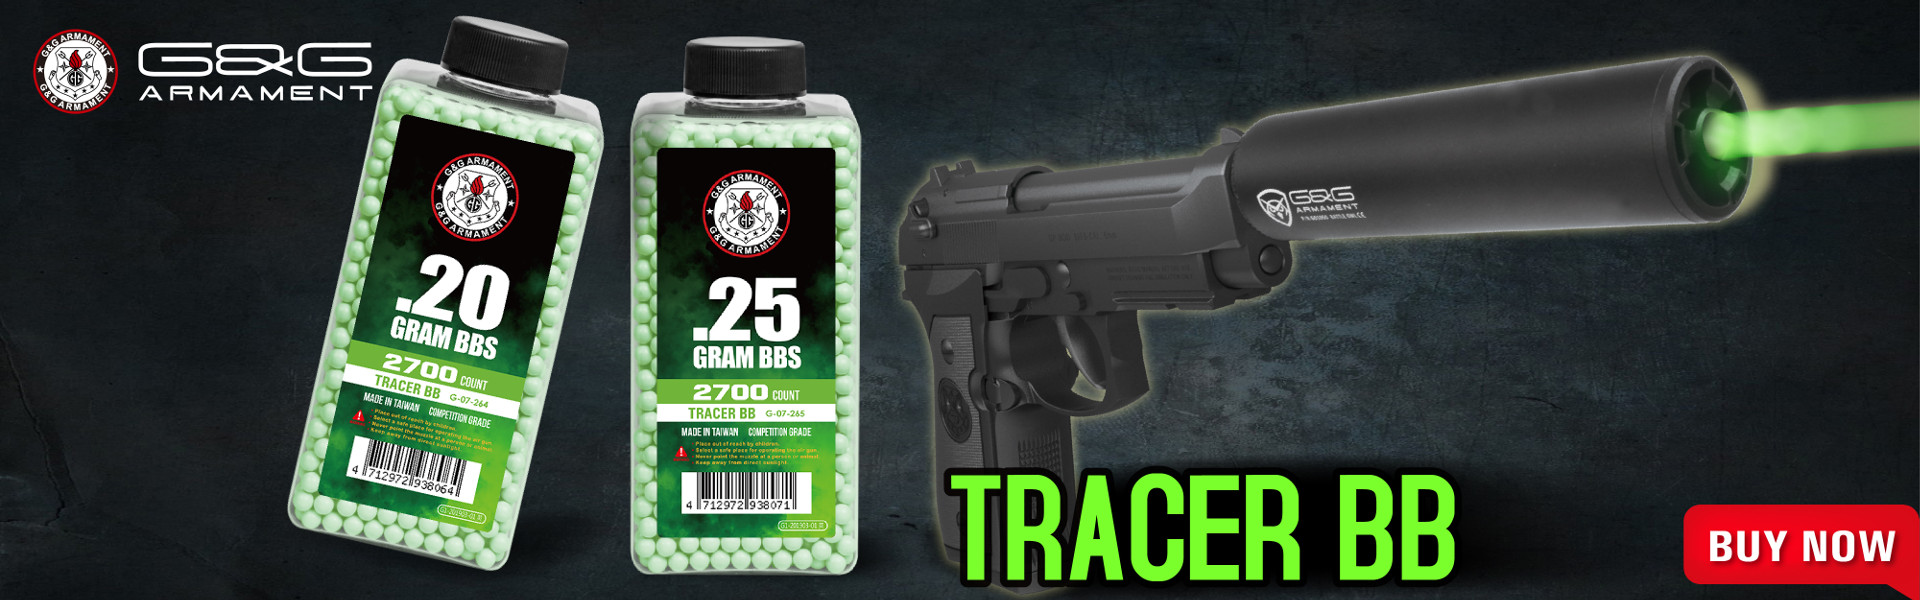 Green Tracer BBs 2700ct